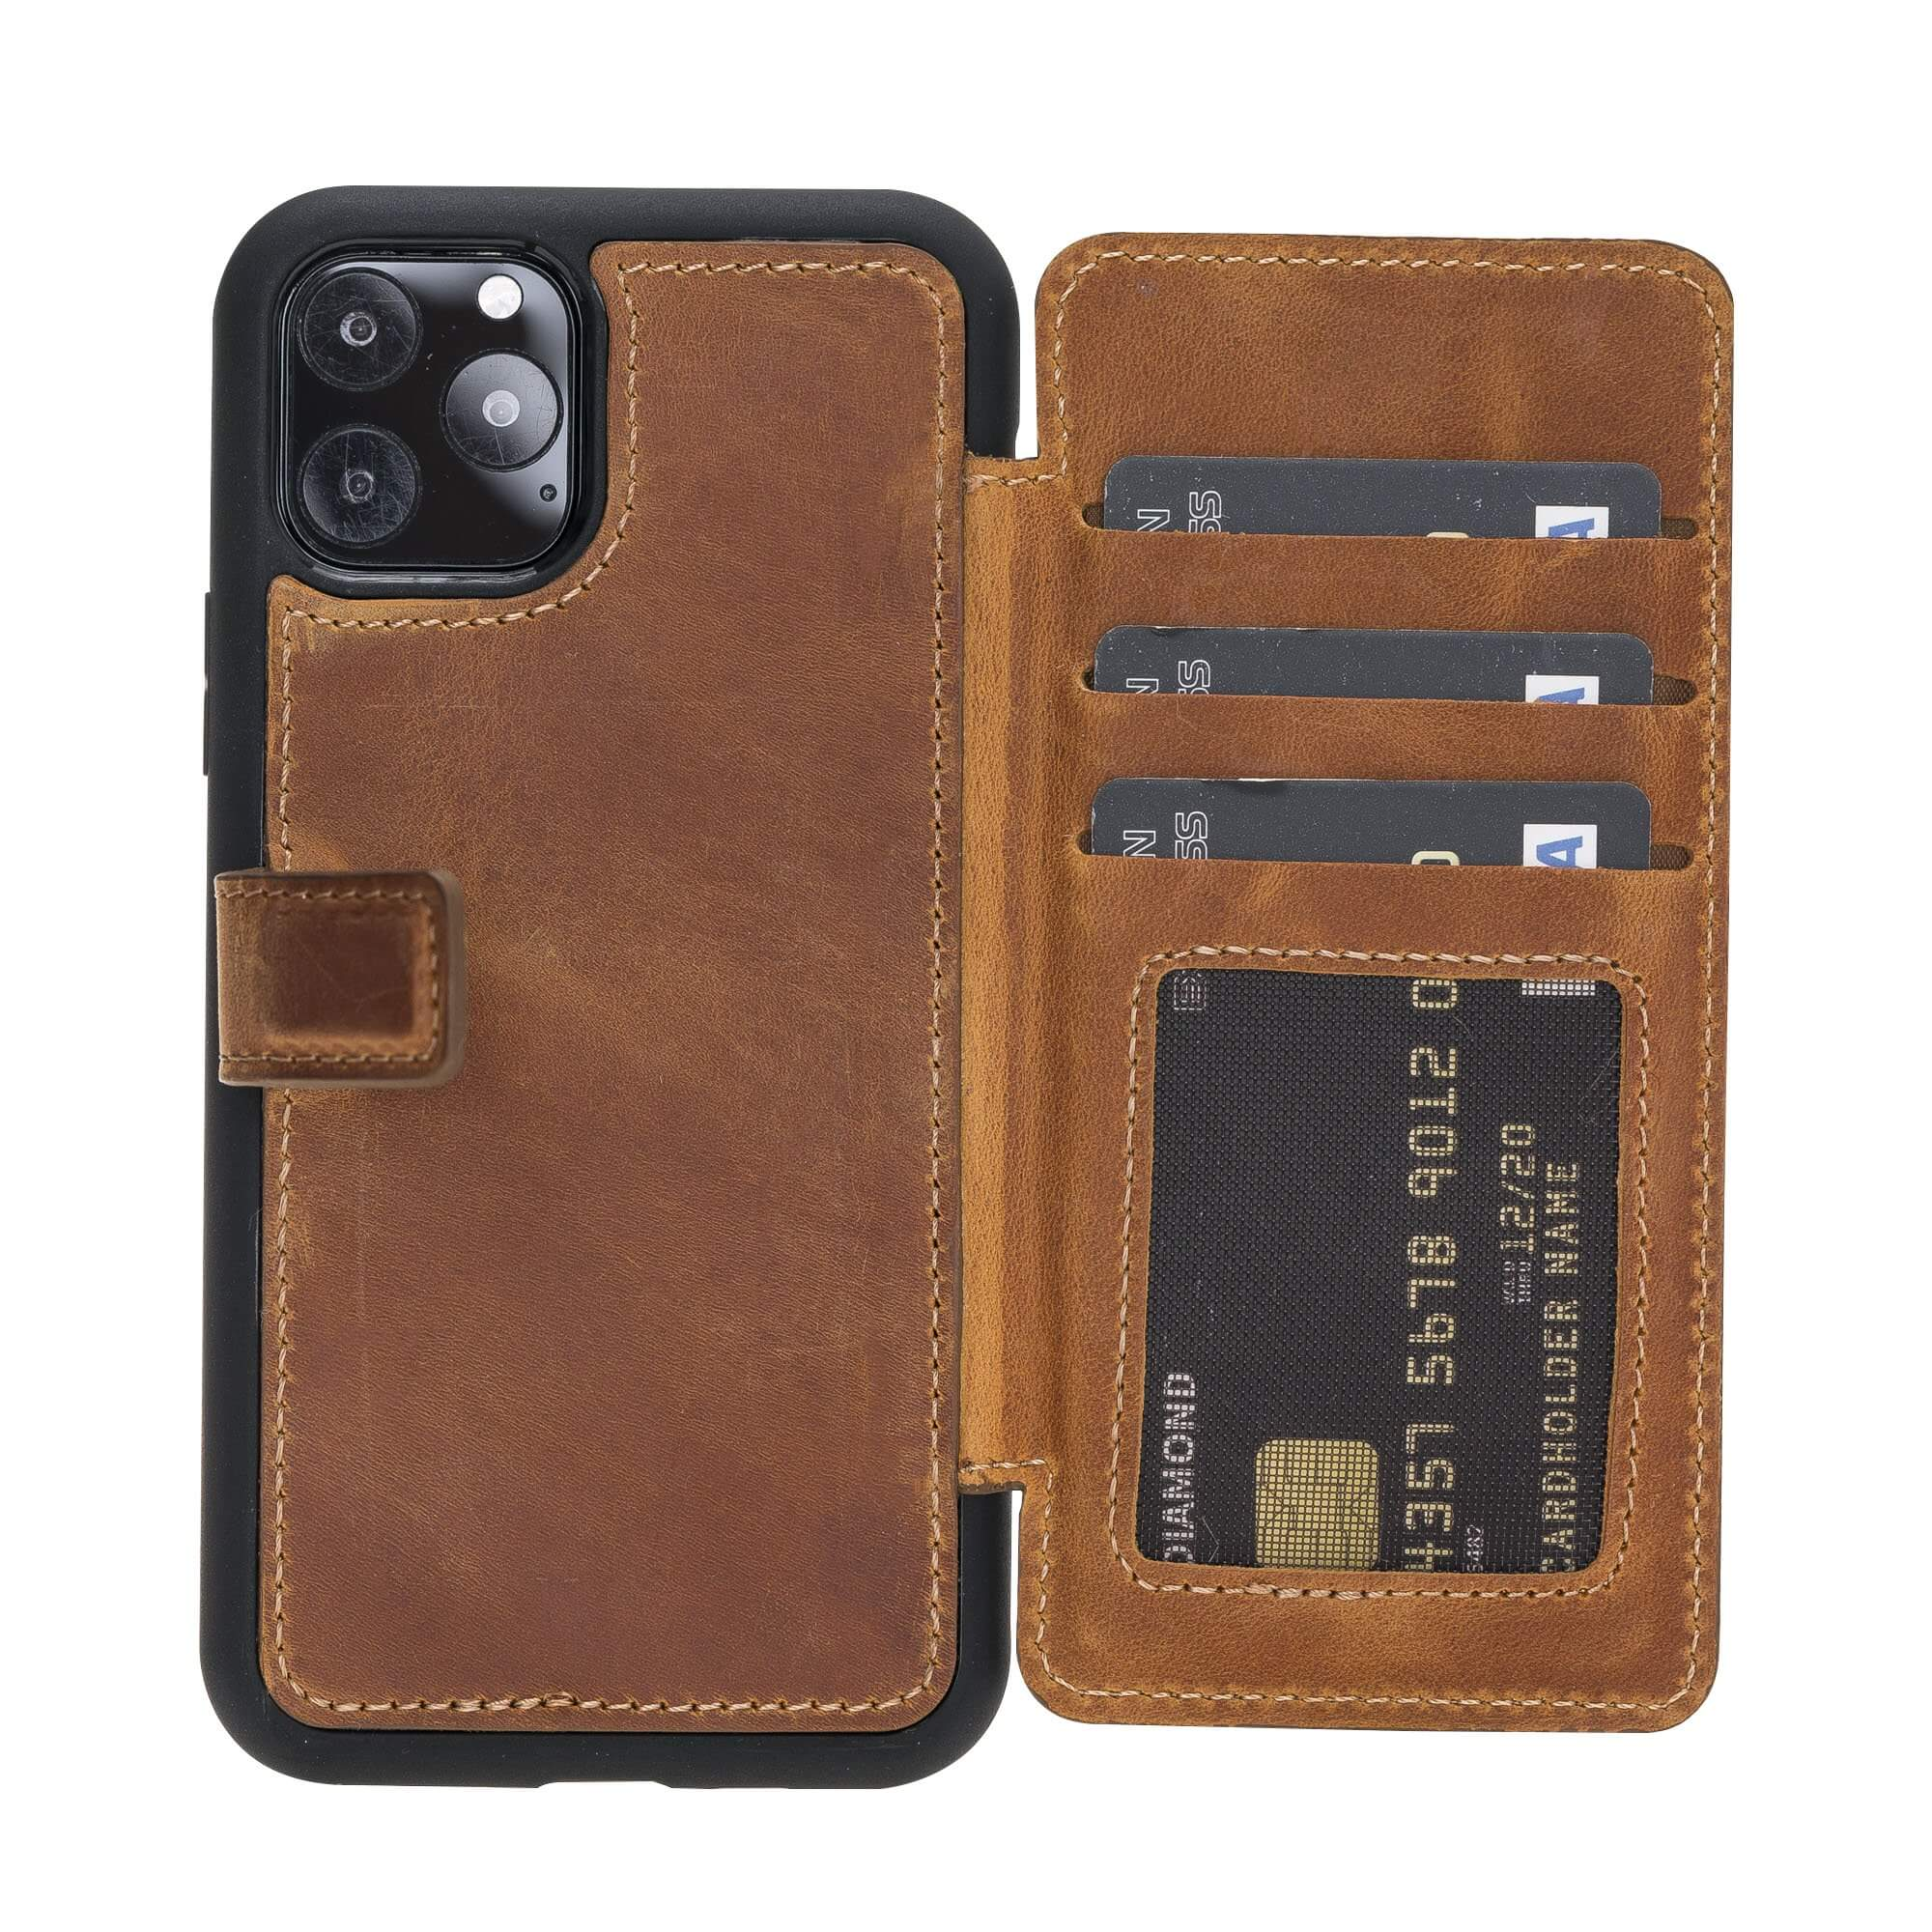 Verona RFID Blocking Leather Slim Wallet Case for iPhone 11 Pro Max